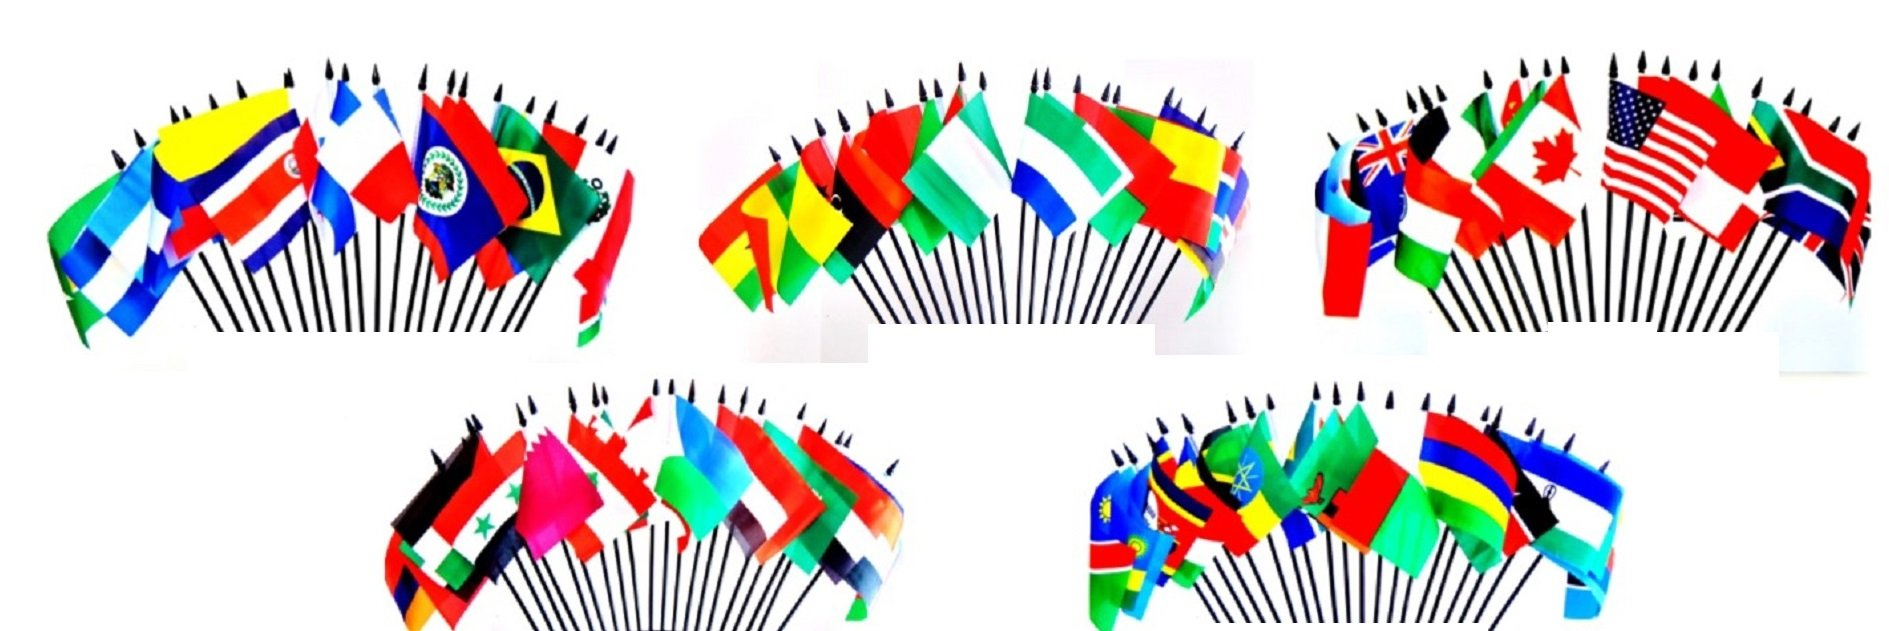 100 World Flag SET-100 Polyester 4''x6'' Flags, One Flag for 100 Popular International Olympic and World Cup Countries, 4x6 Miniature Desk & Table Flags, Small Mini Stick Flags